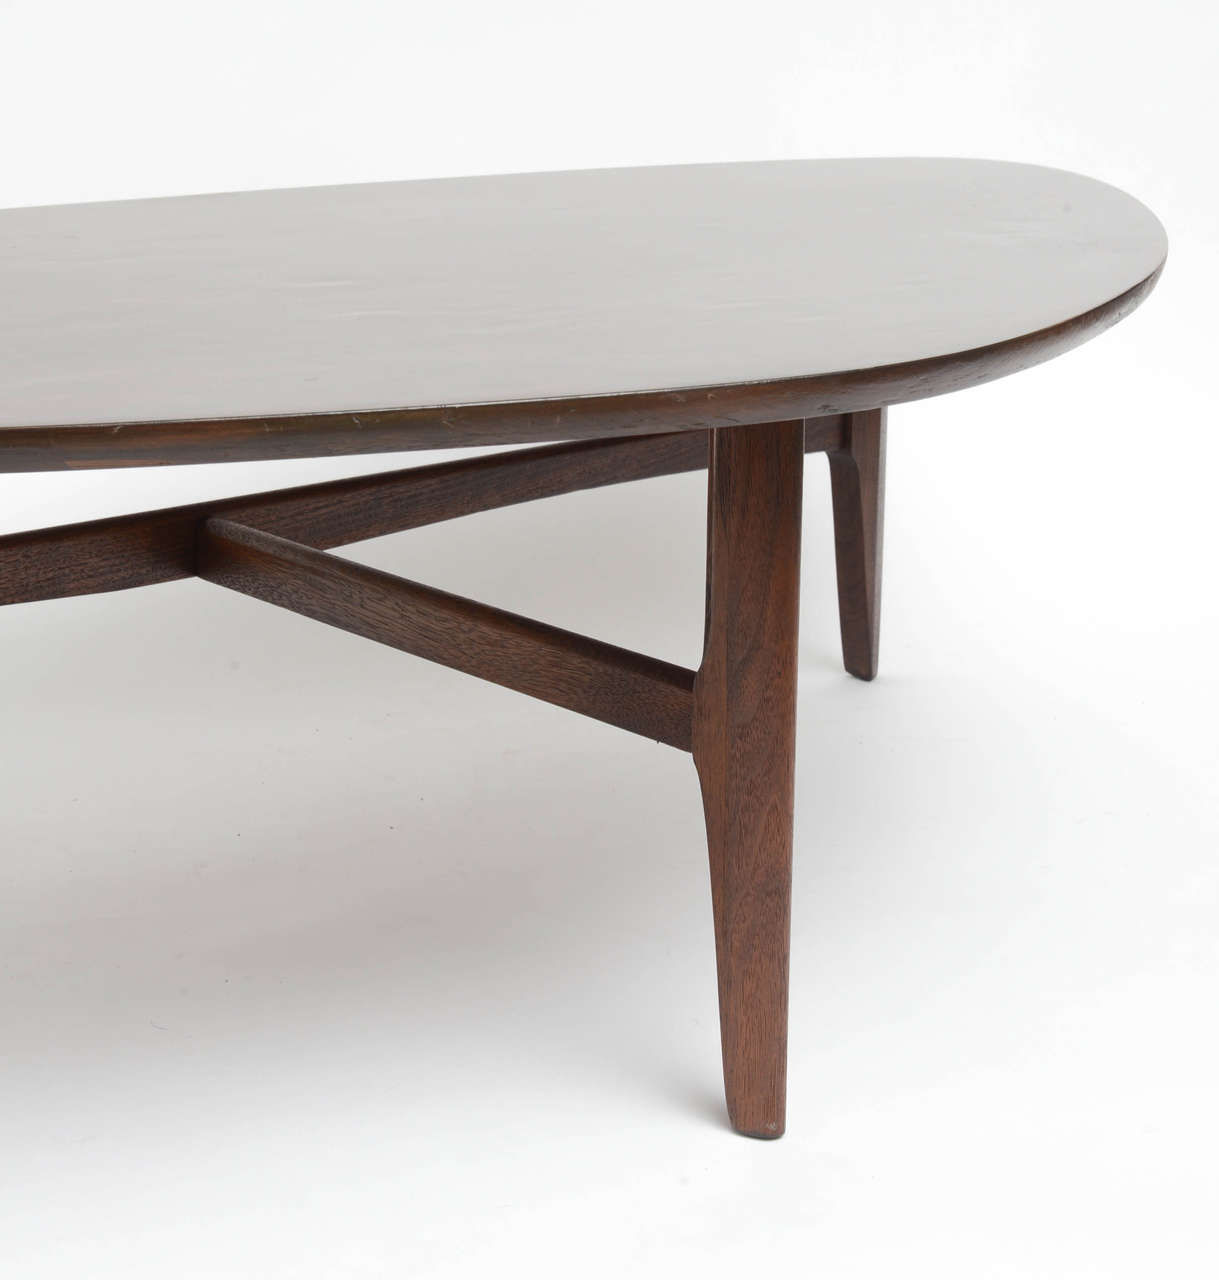 31. Large Okura Kidney Table ($995): This colorful bean-shaped table ...